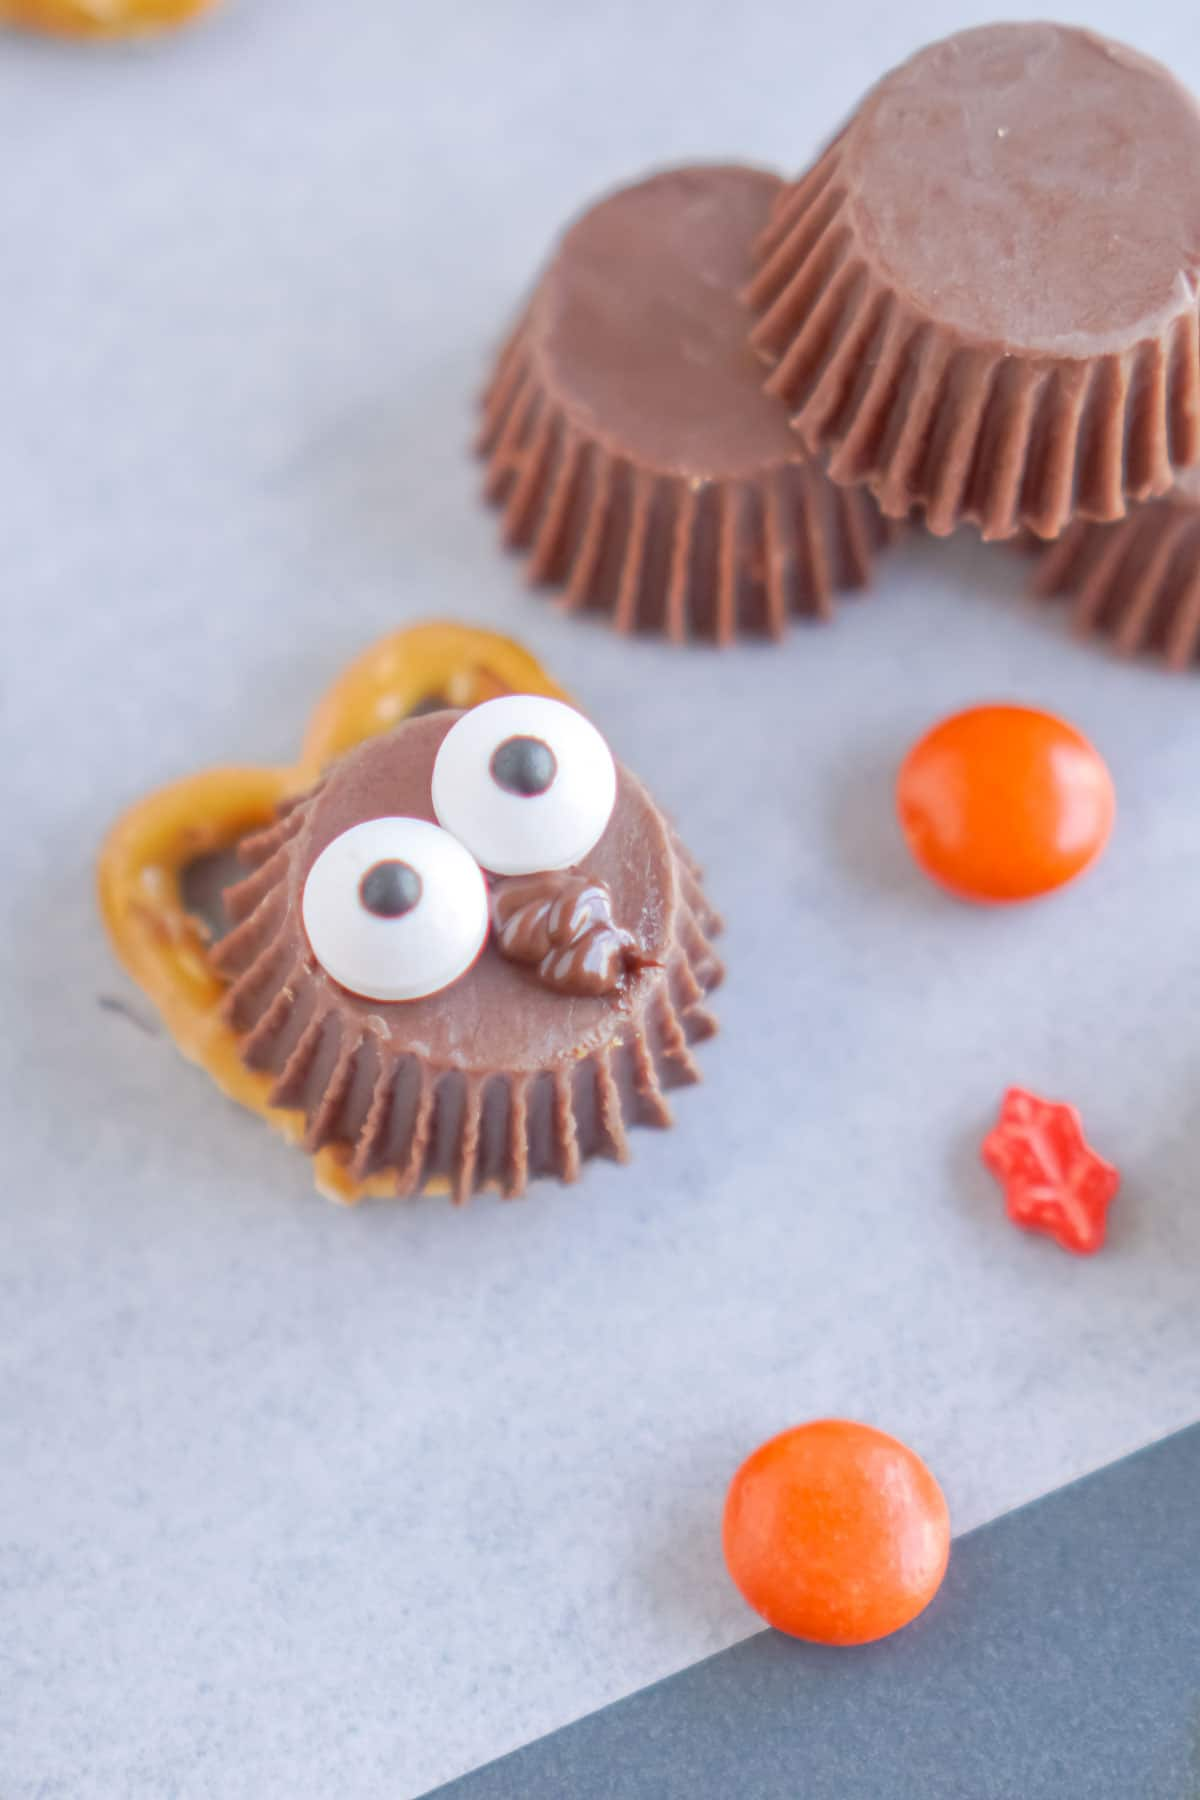 Reese's Peanut Butter cup with candy eye on top